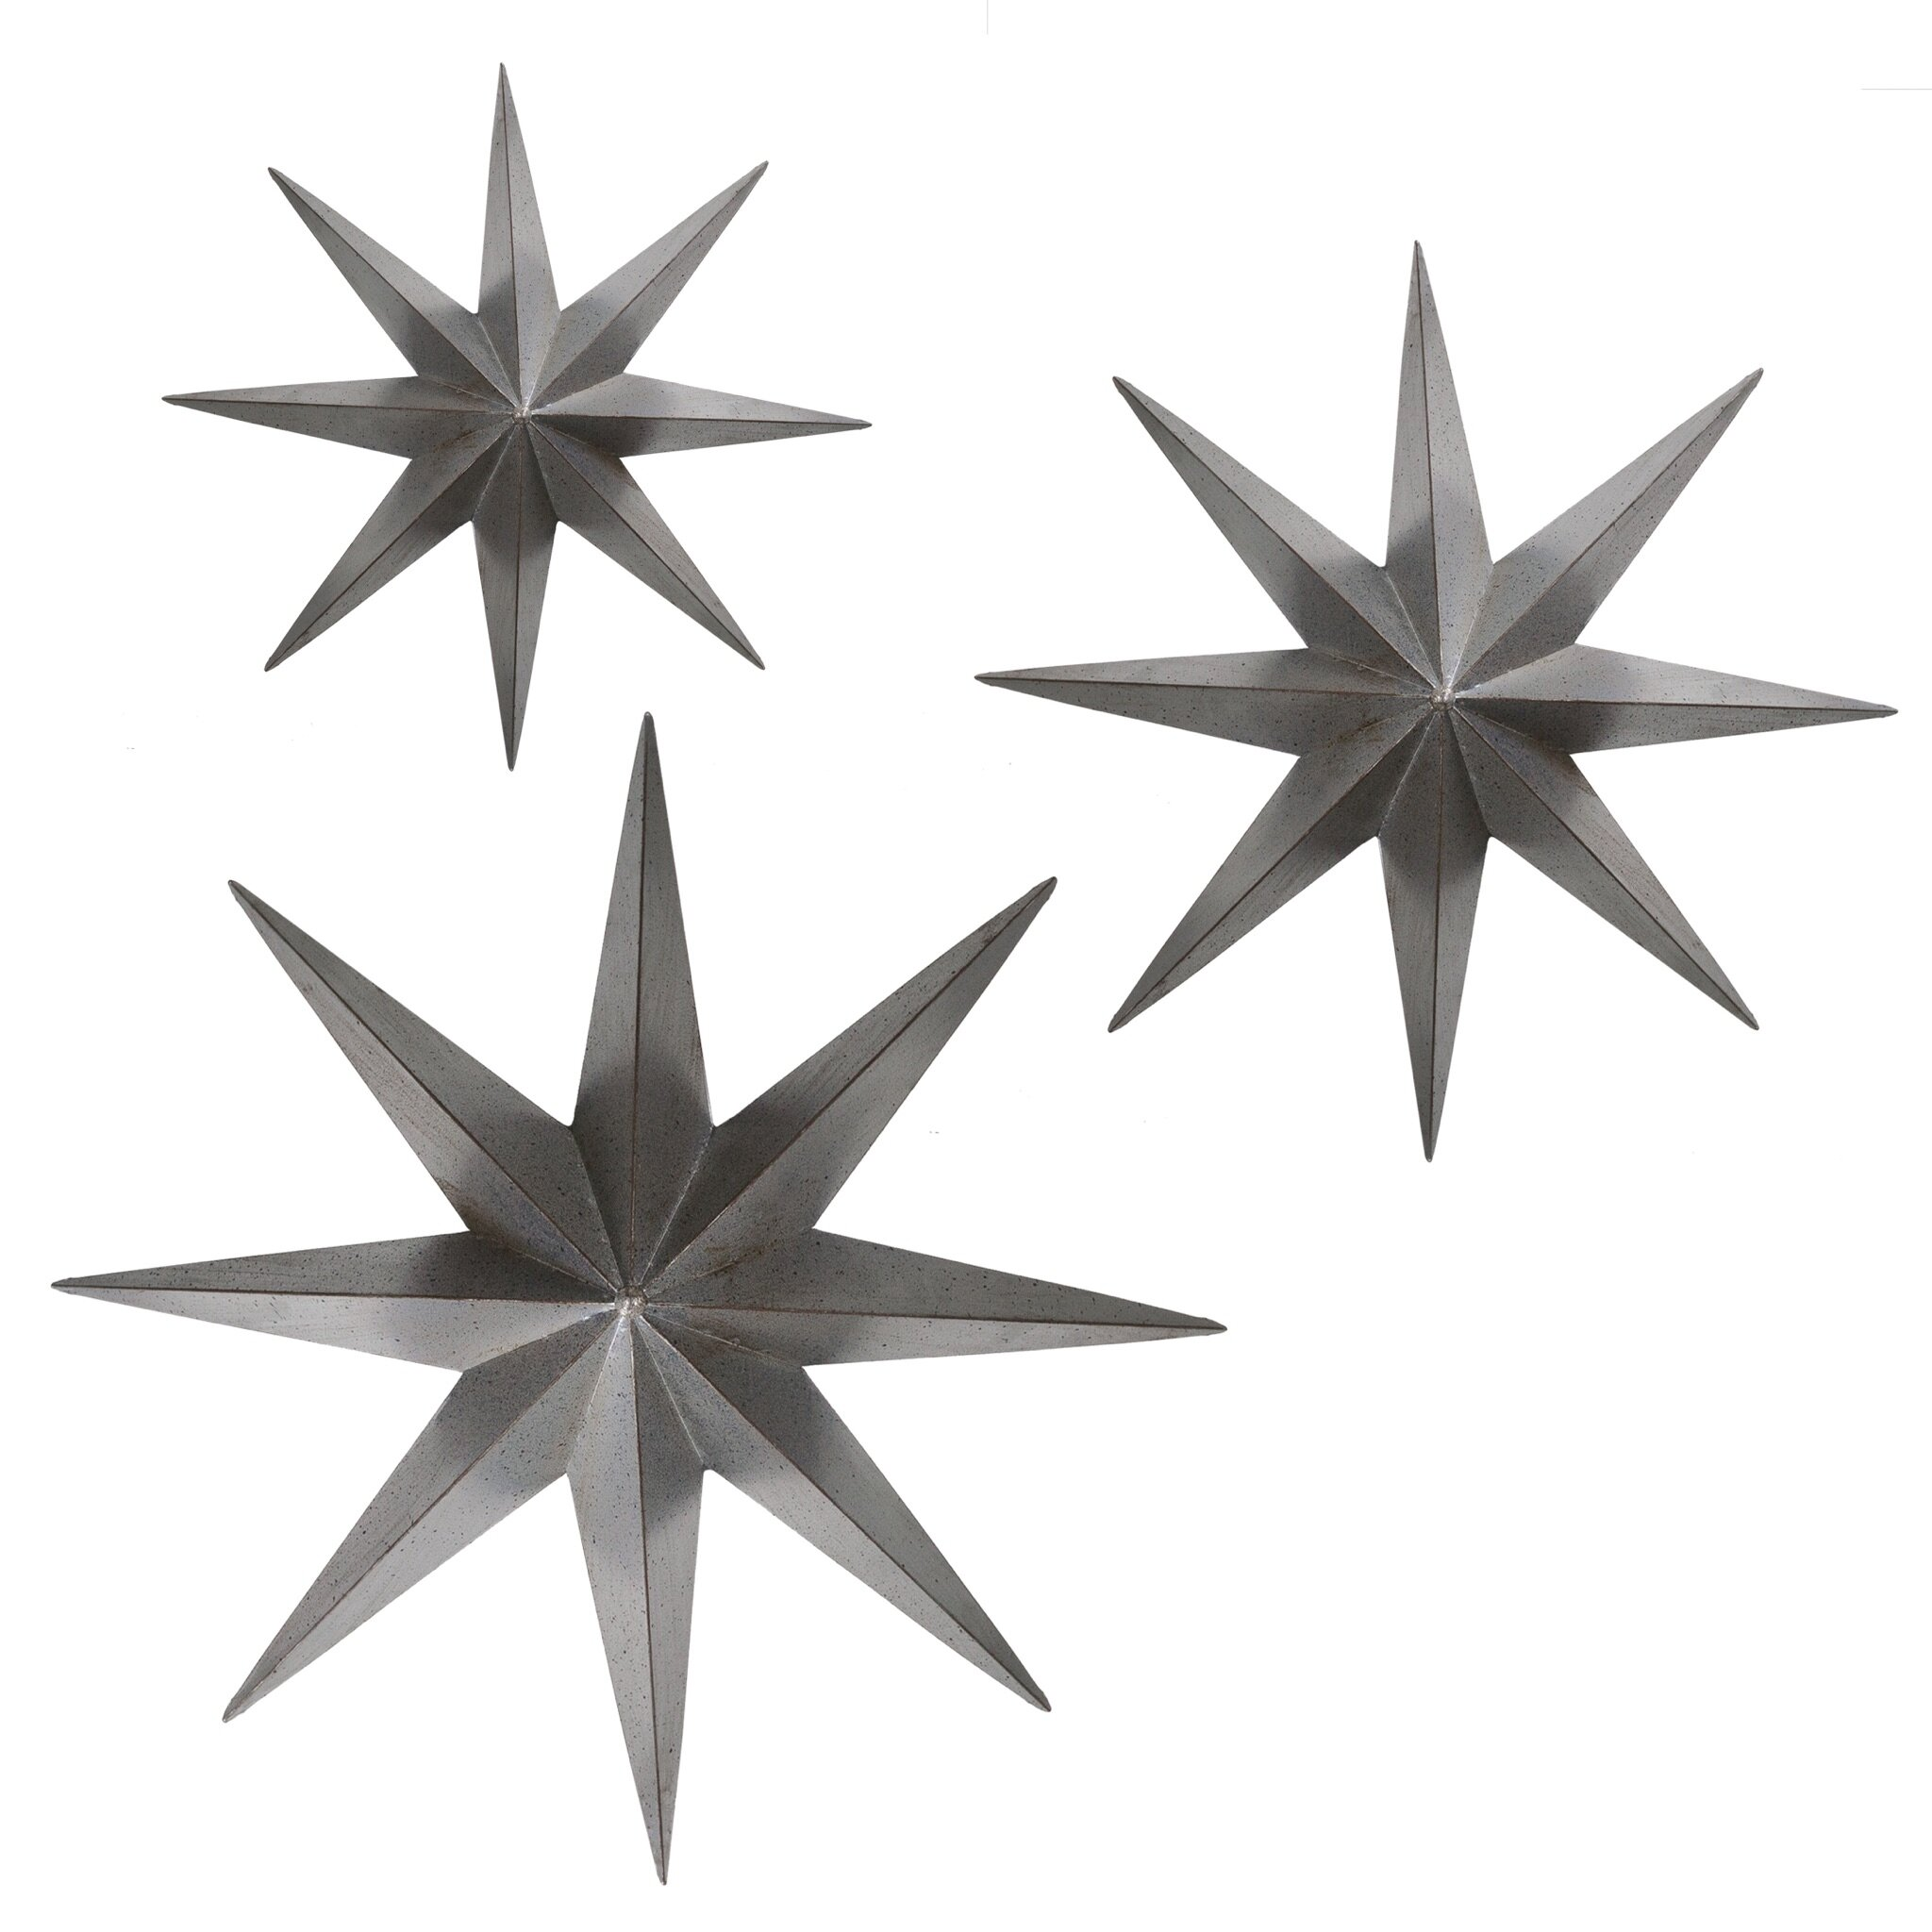 bayaccents 3 piece metal stars wall d cor set wayfair. Black Bedroom Furniture Sets. Home Design Ideas